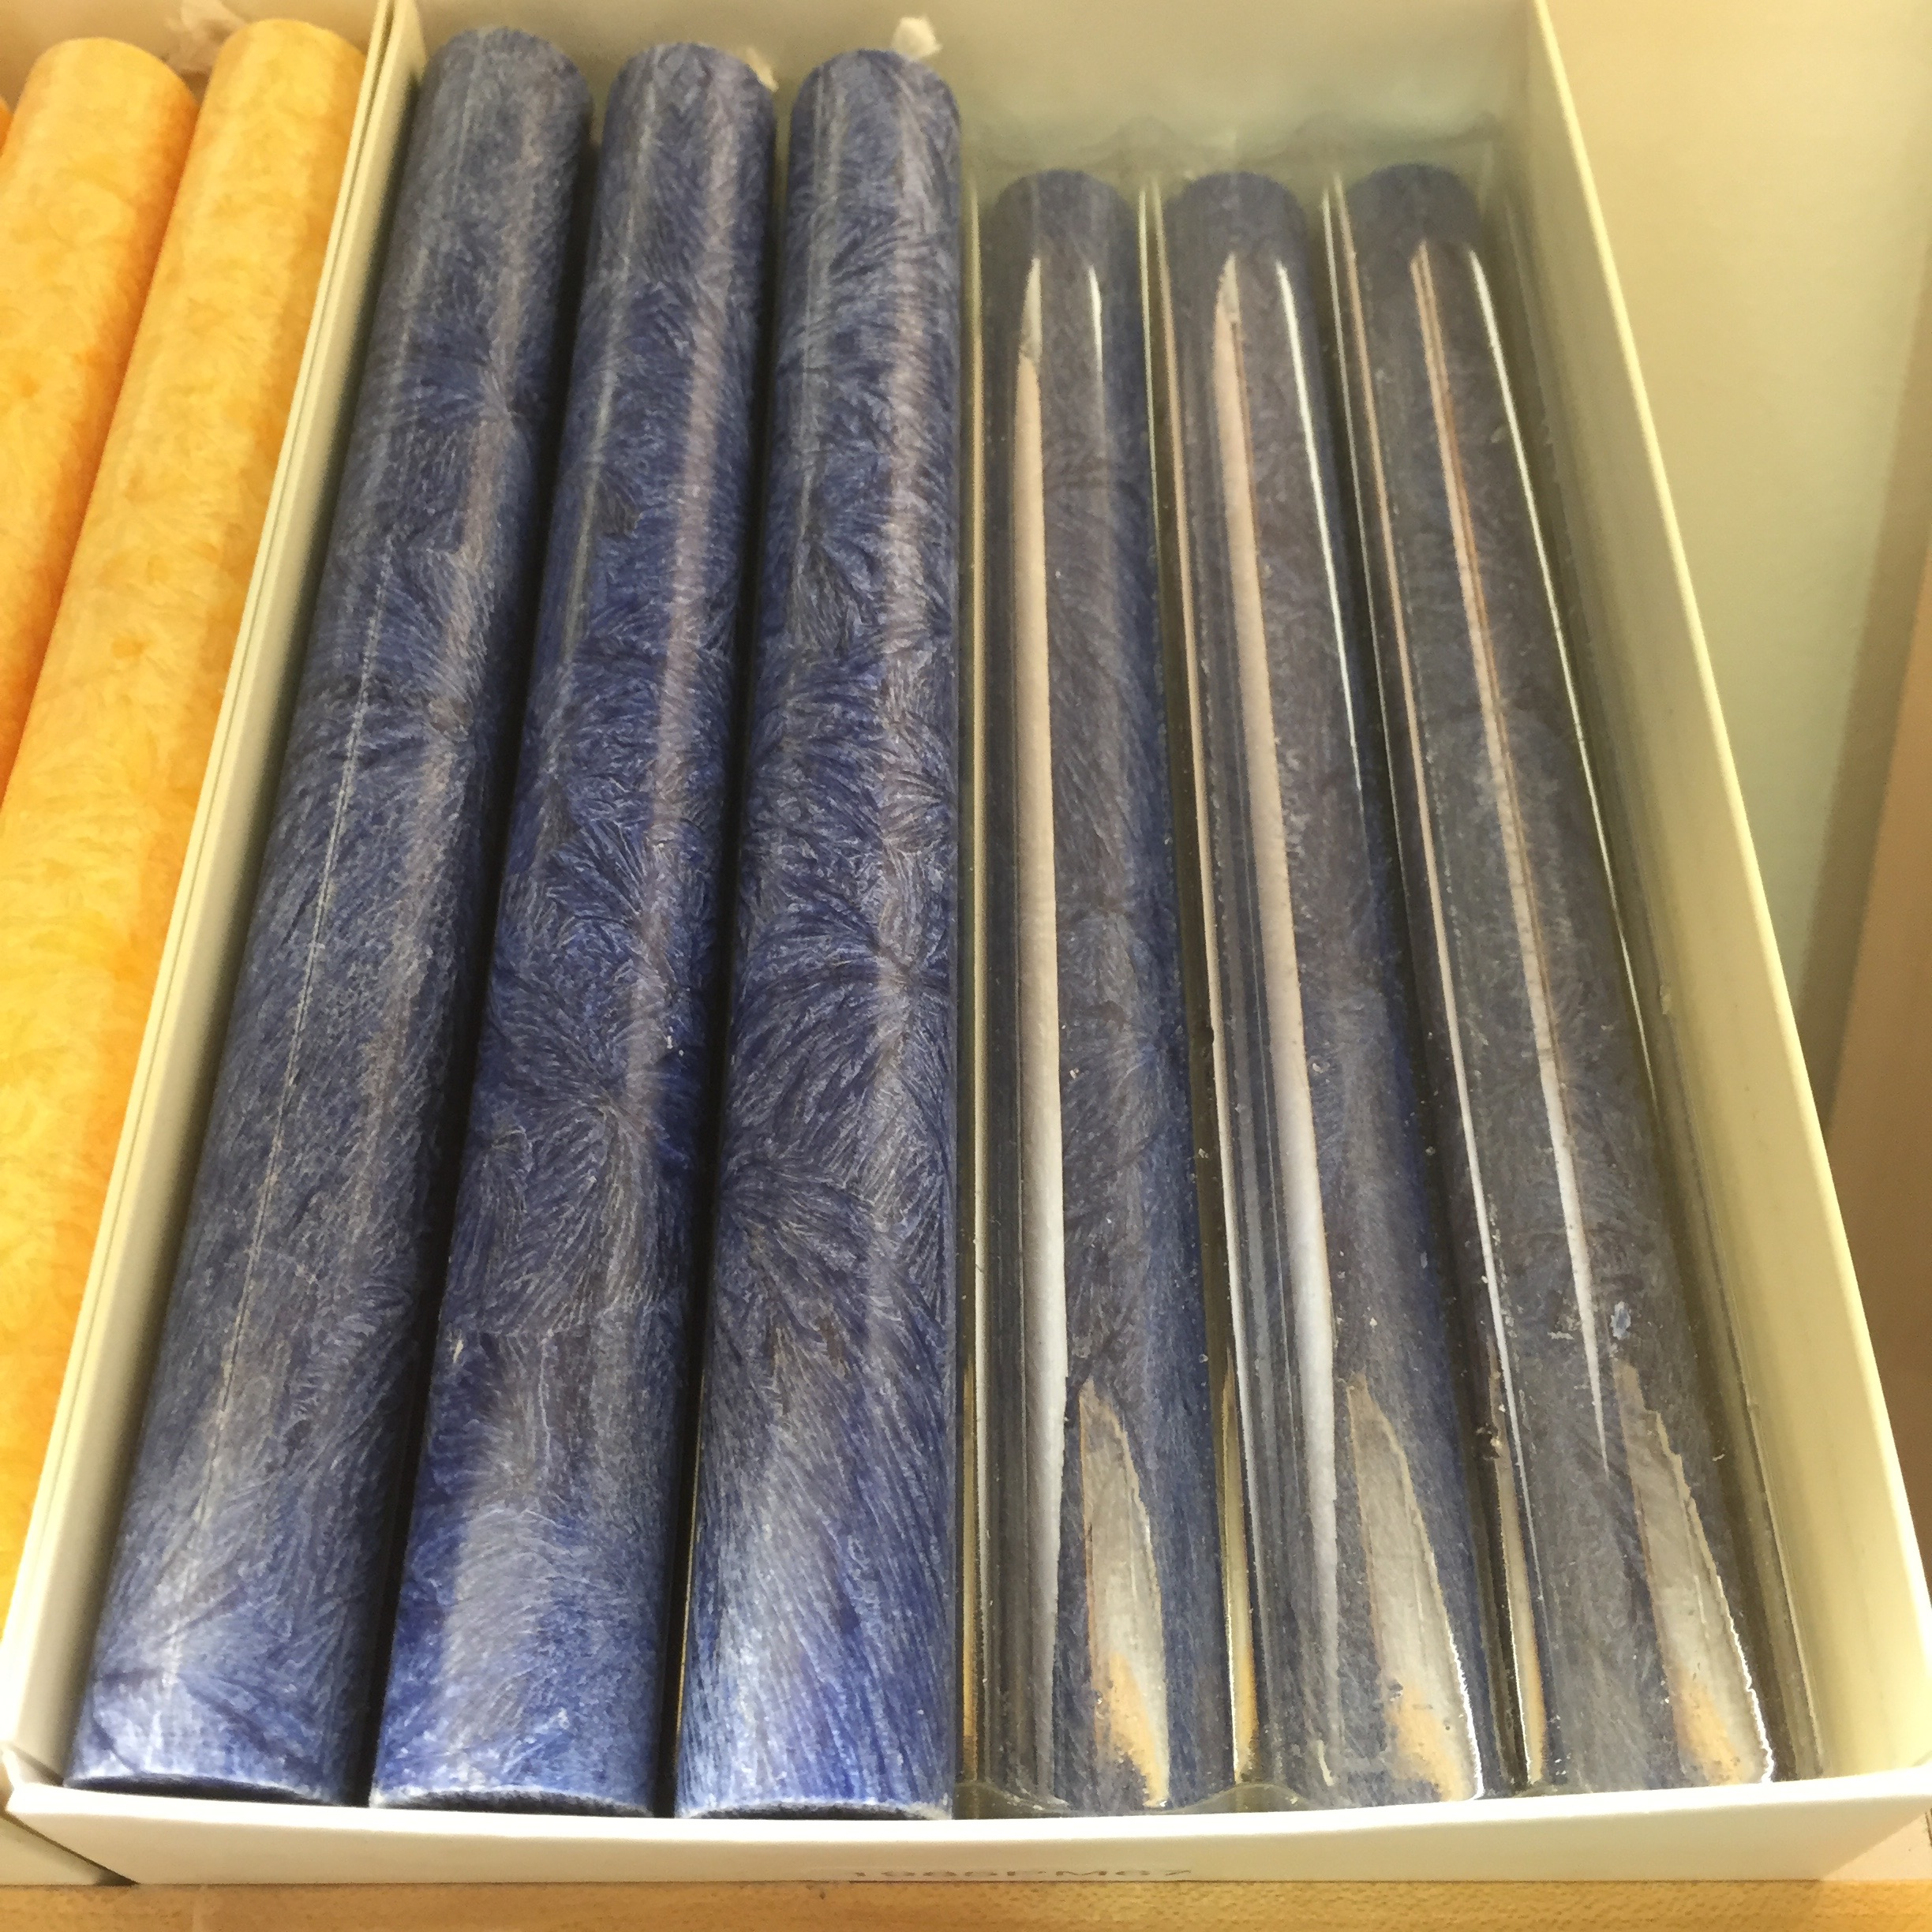 In blue they look like dyed indigo.